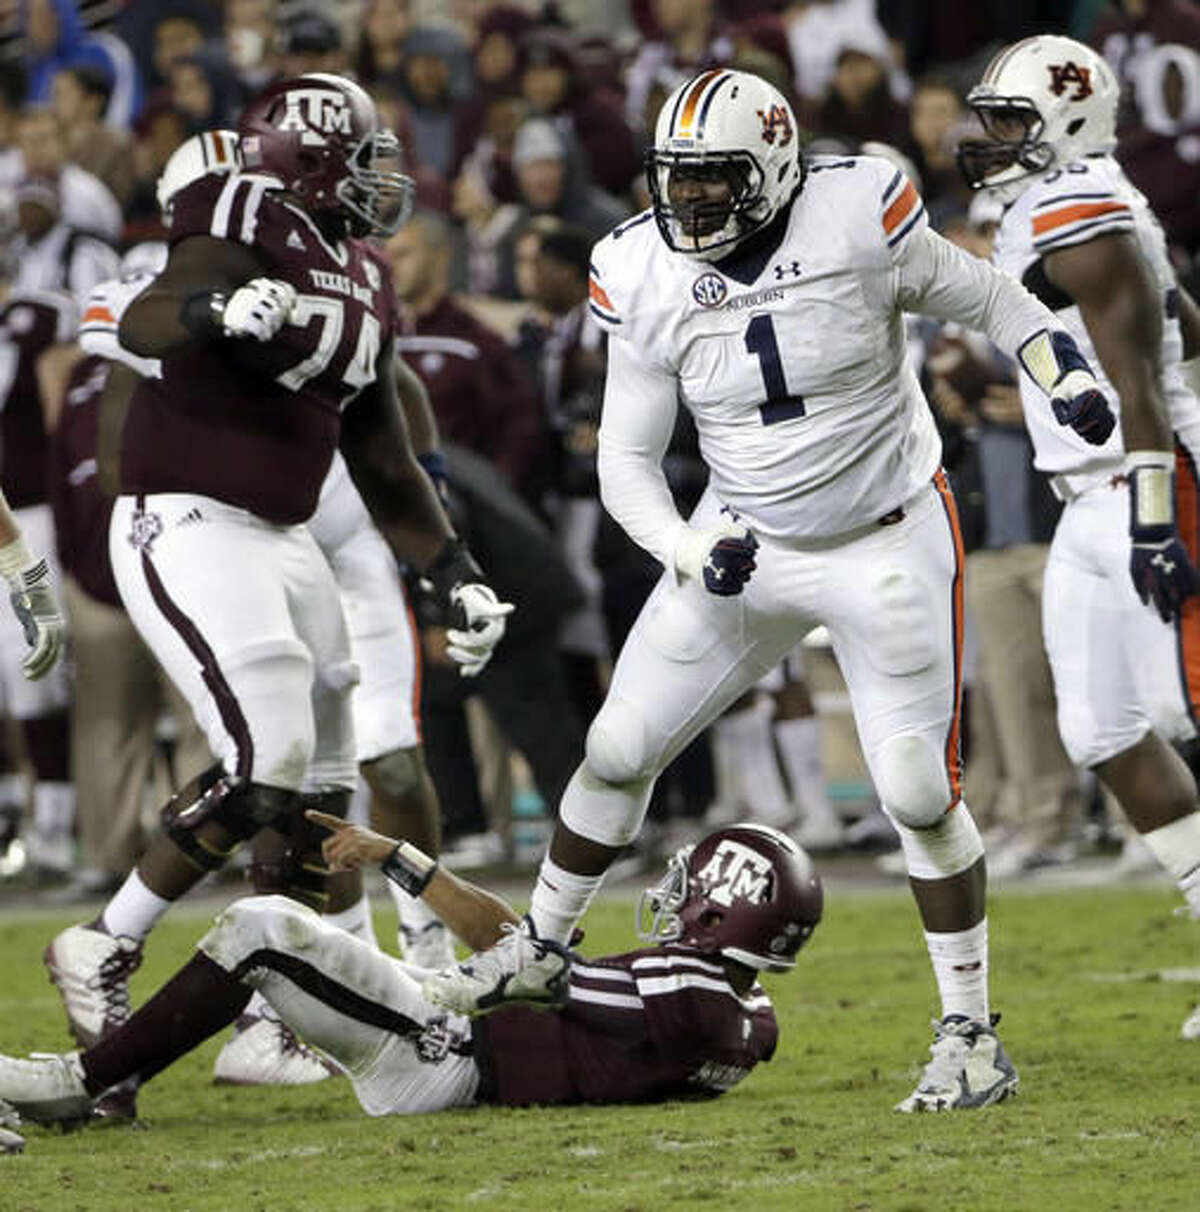 FILE - In this Nov. 7, 2015, file photo, Auburn defensive tackle Montravius Adams (1) celebrates after sacking Texas A&M quarterback Kyler Murray, bottom, during the second quarter of an NCAA college football game, in College Station, Texas. Auburn defensive linemen Montravius Adams and his teammate Carl Lawson have been at the forefront of the Tigers' resurgence (AP Photo/David J. Phillip, File)